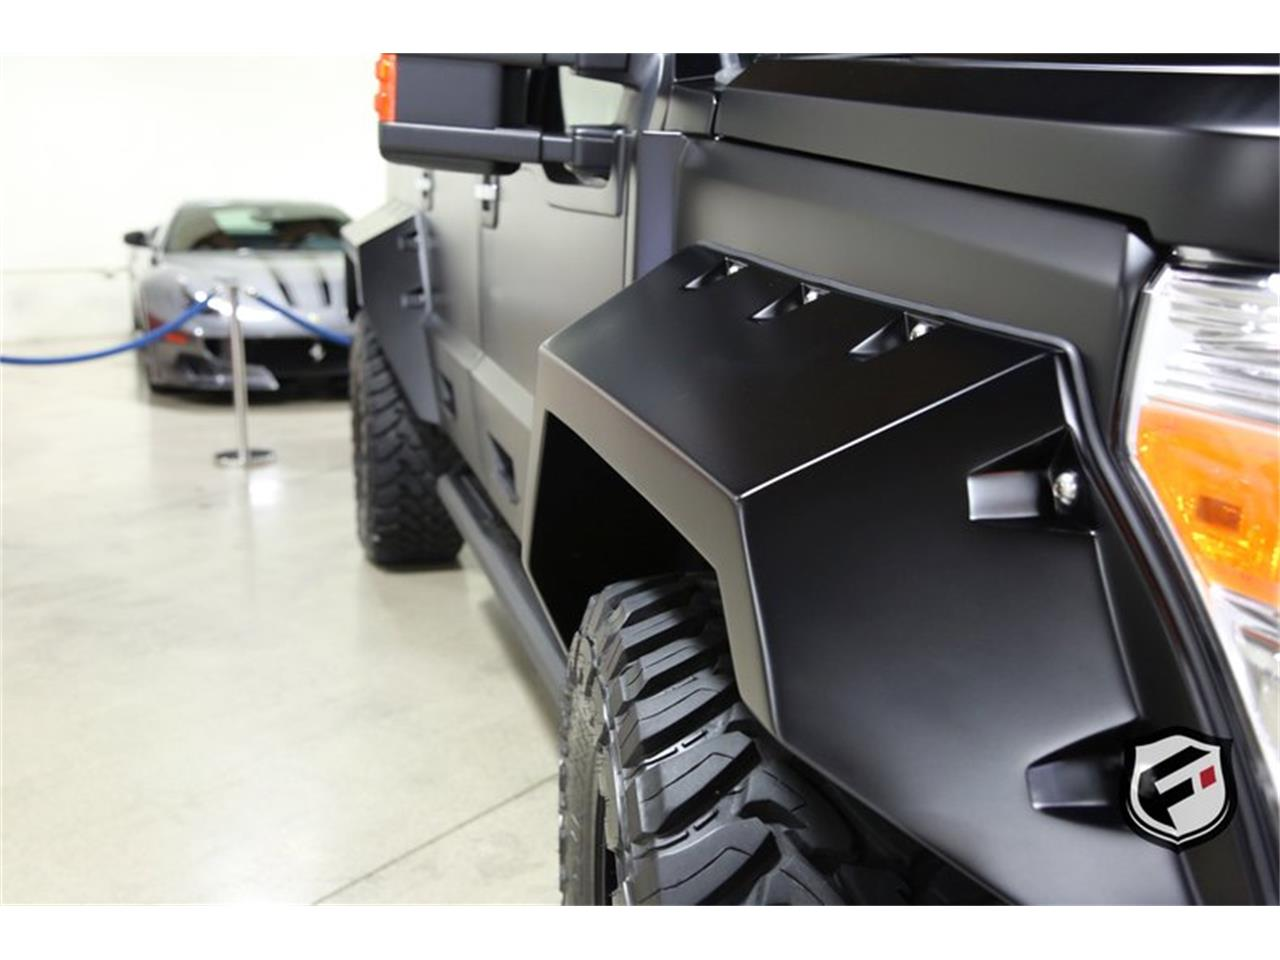 2015 USSV Rhino GX for sale in Chatsworth, CA – photo 12